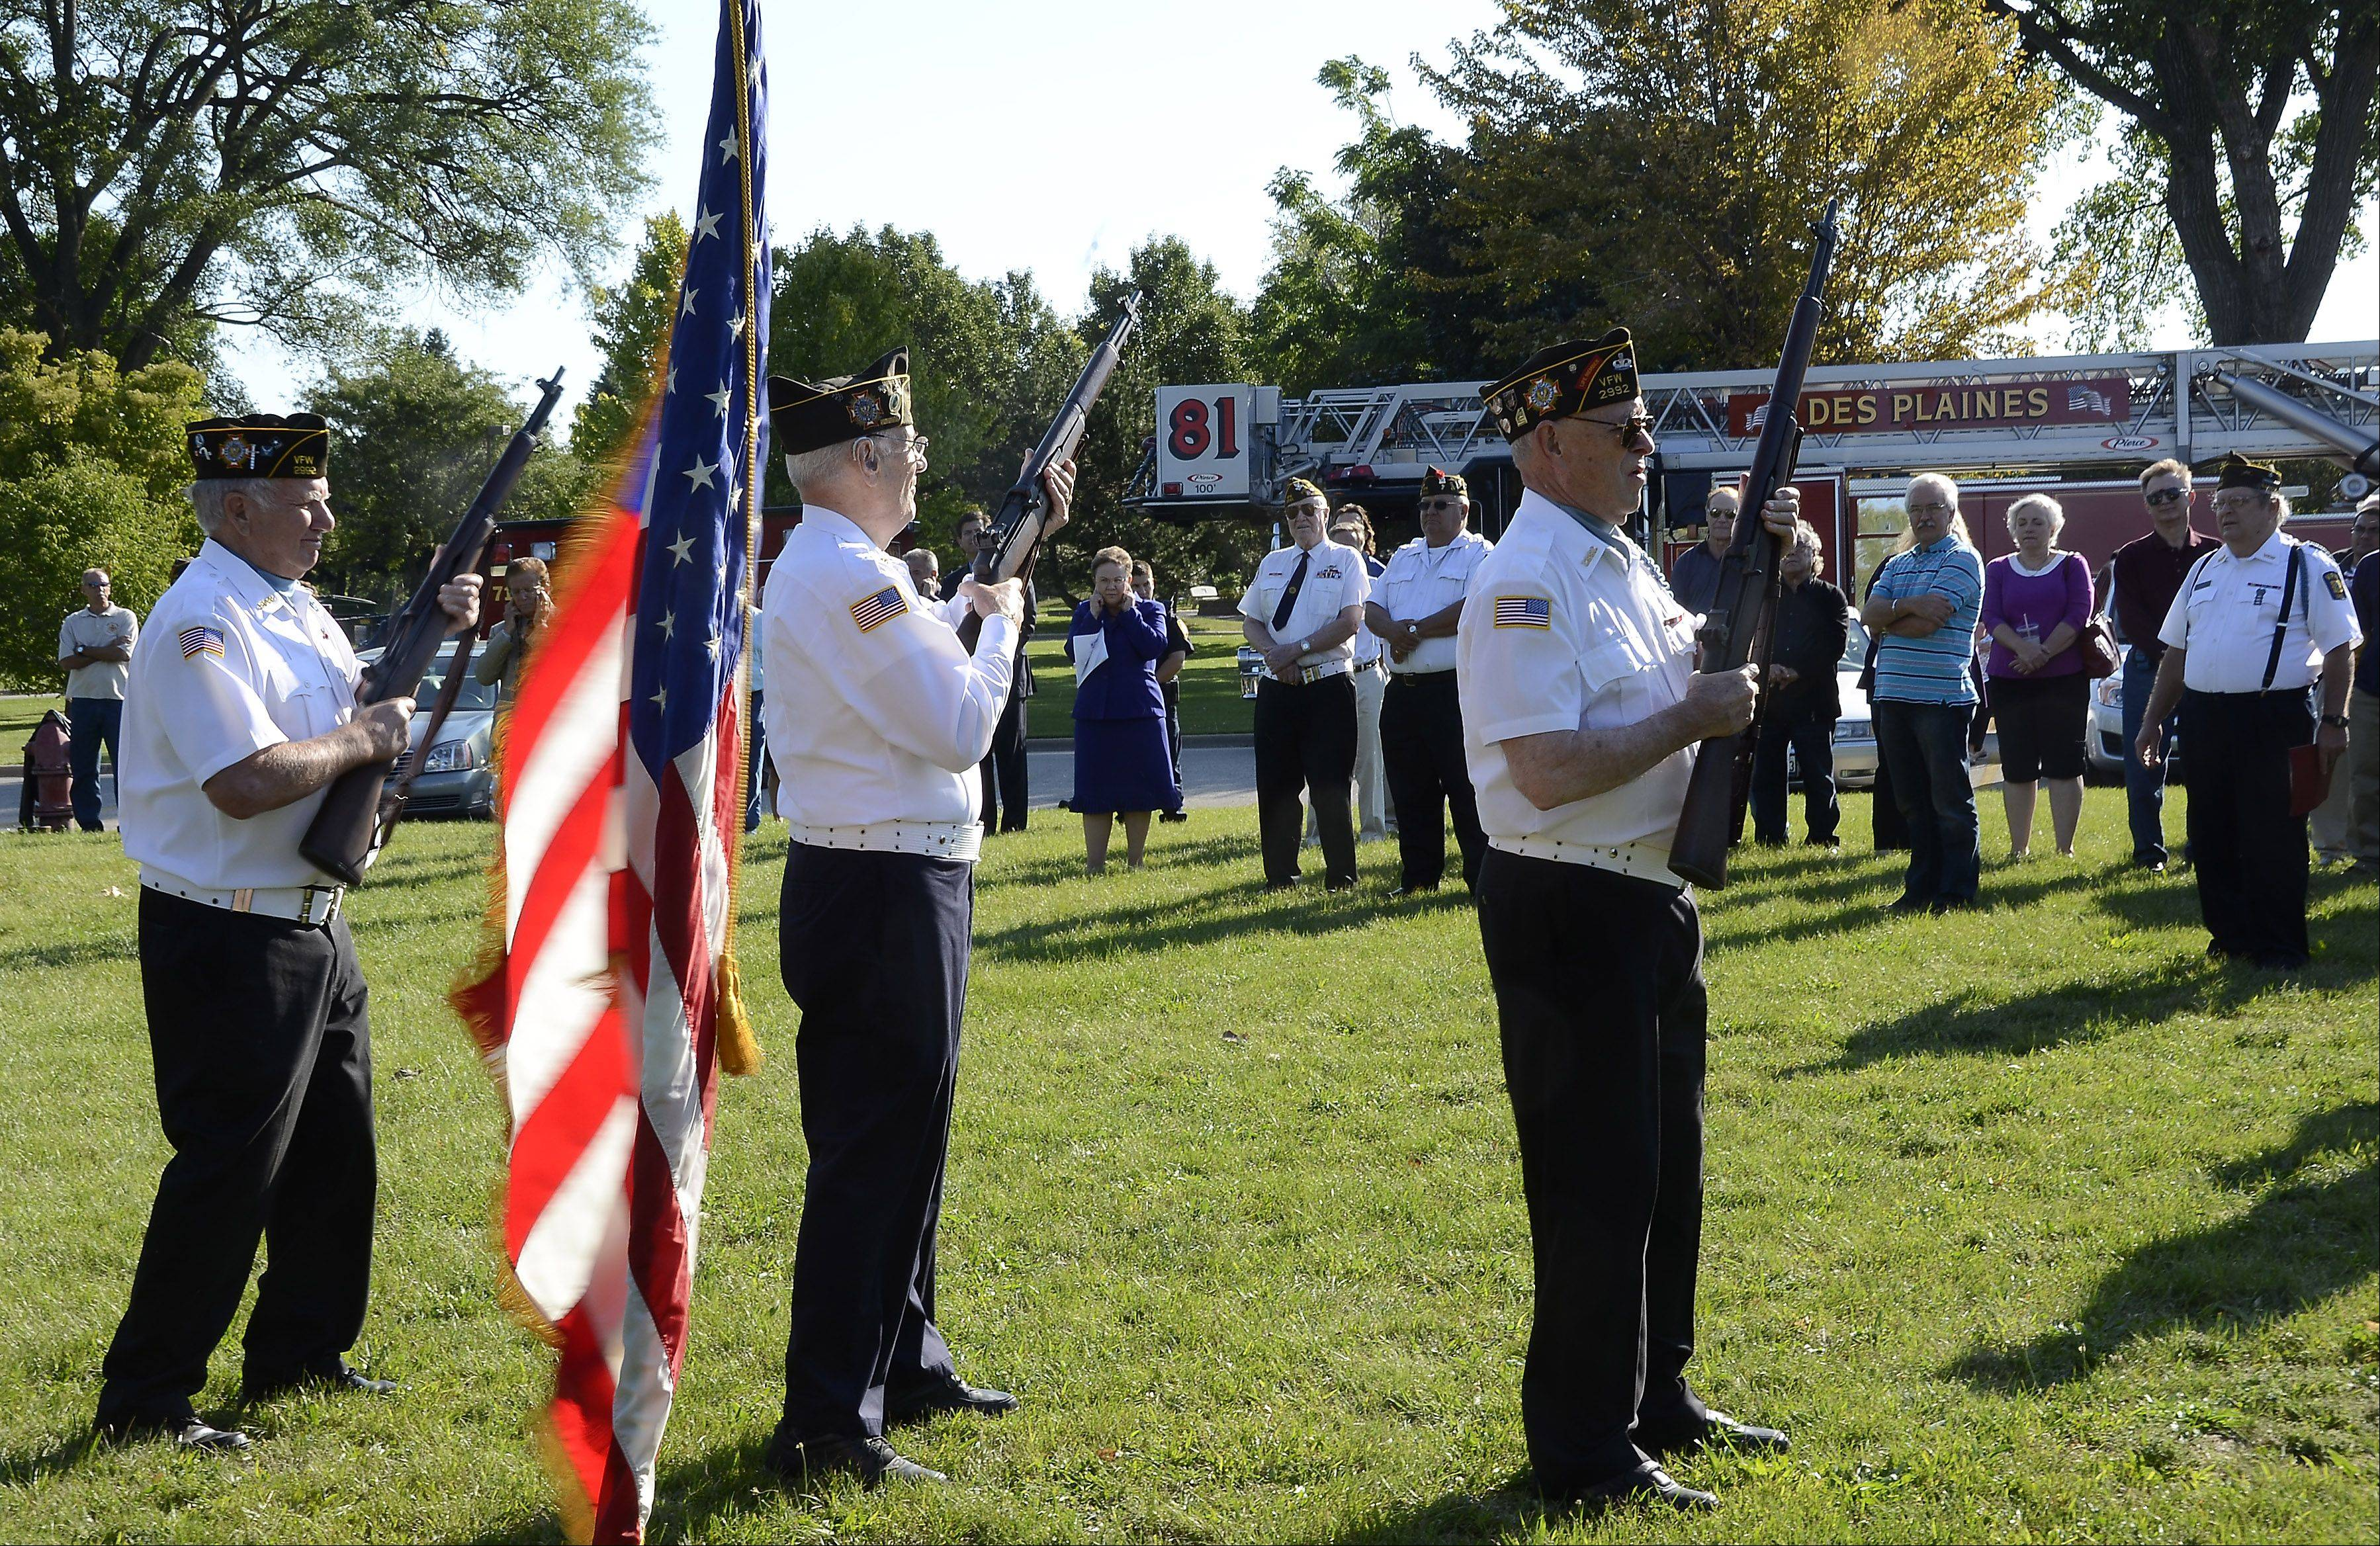 Members of a combined honor guard made up of members from American Legion Post 36 and Veterans of Foreign Wars Post 2992 fire a salute during a 9/11 Patriot Day ceremony at Maryville Academy in Des Plaines.